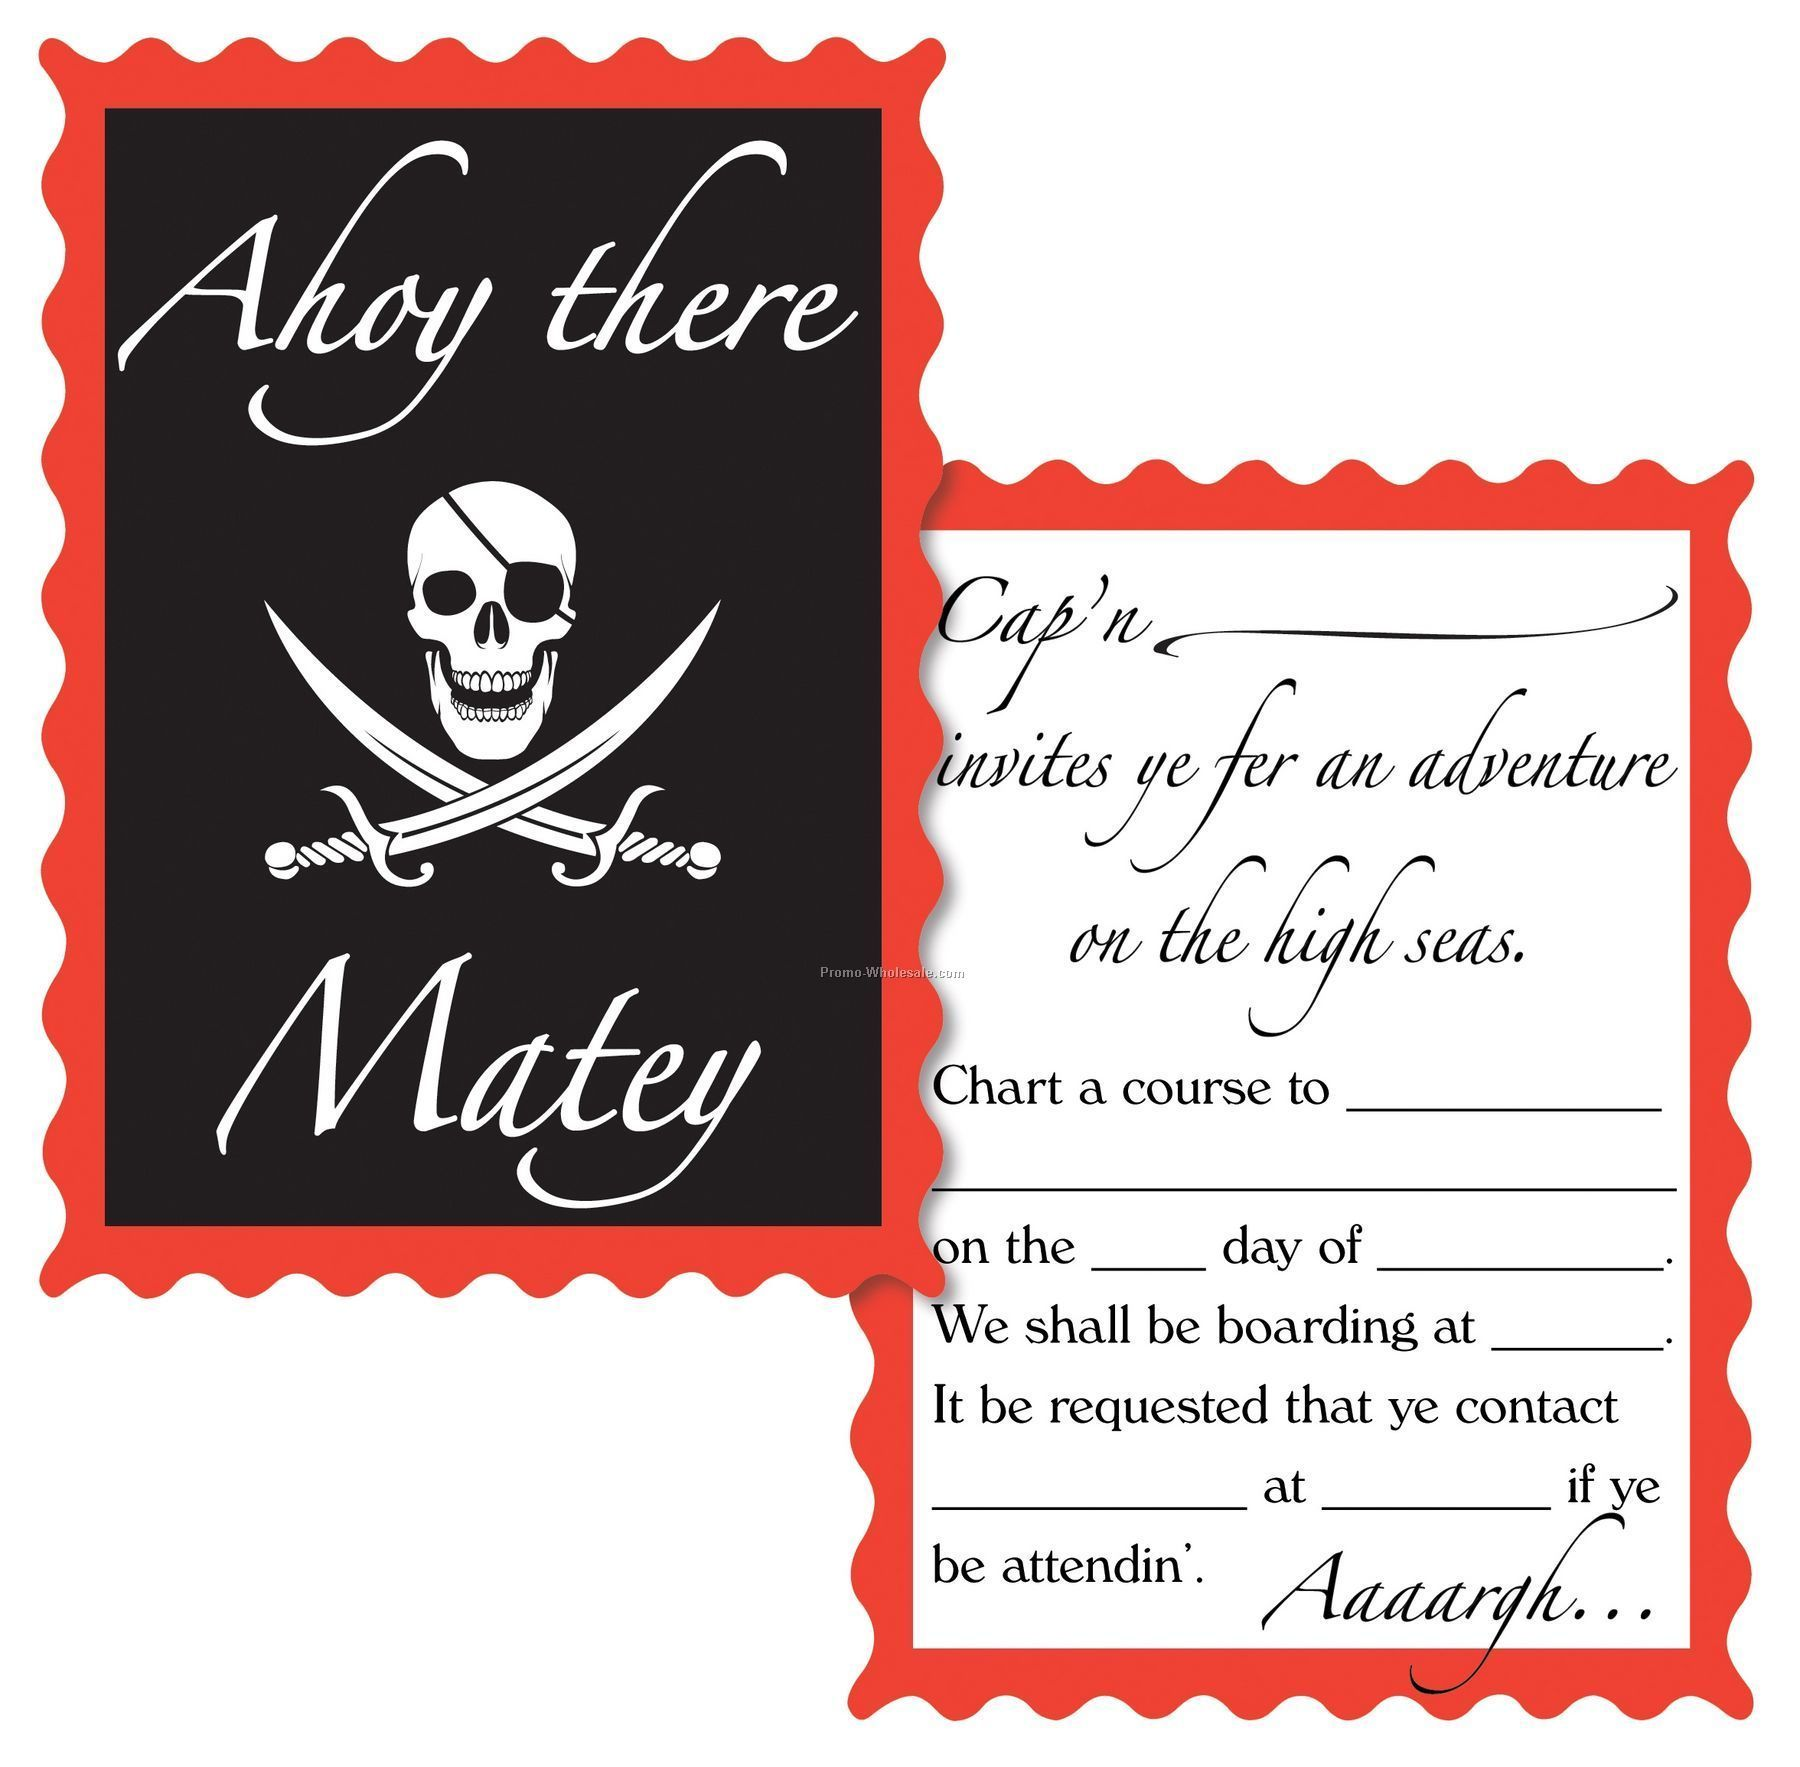 pirate invites | Adventures on the High Seas Day Camp decoration ...